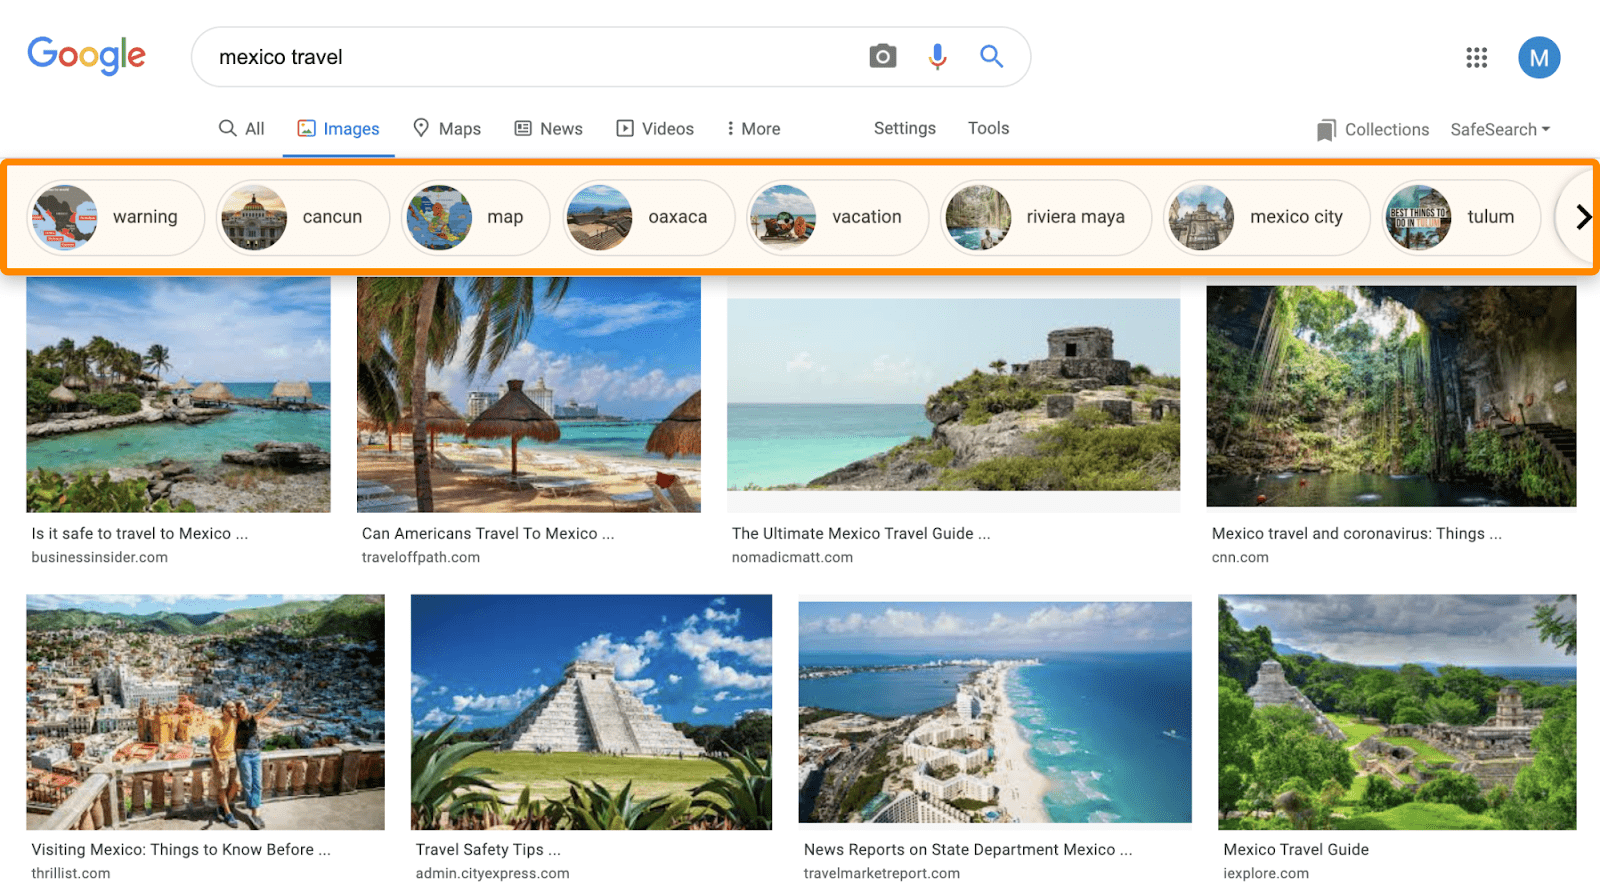 16 google images entities